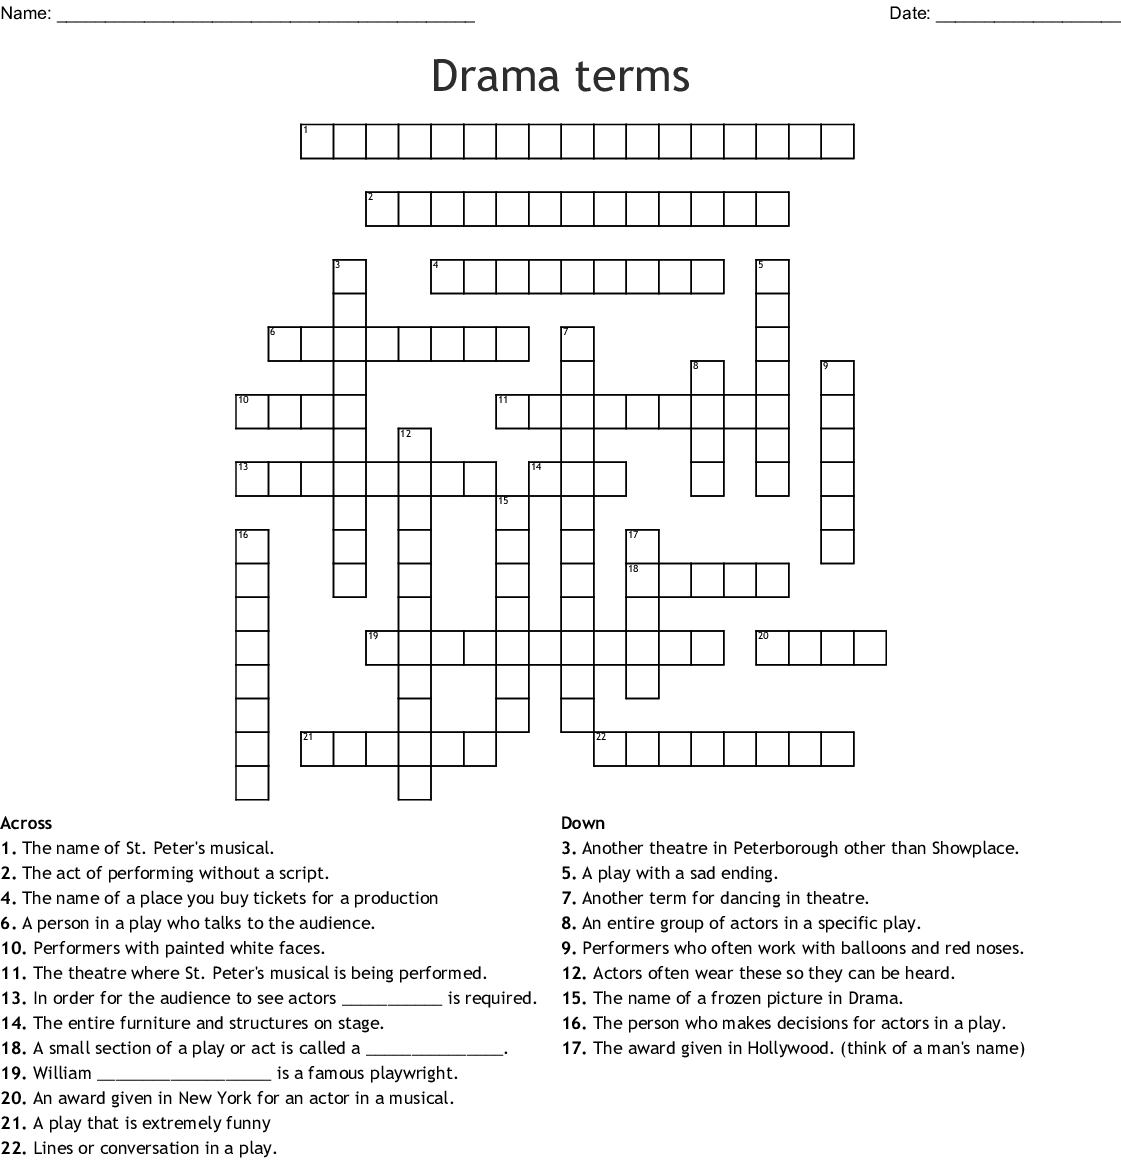 Drama Terms Worksheets